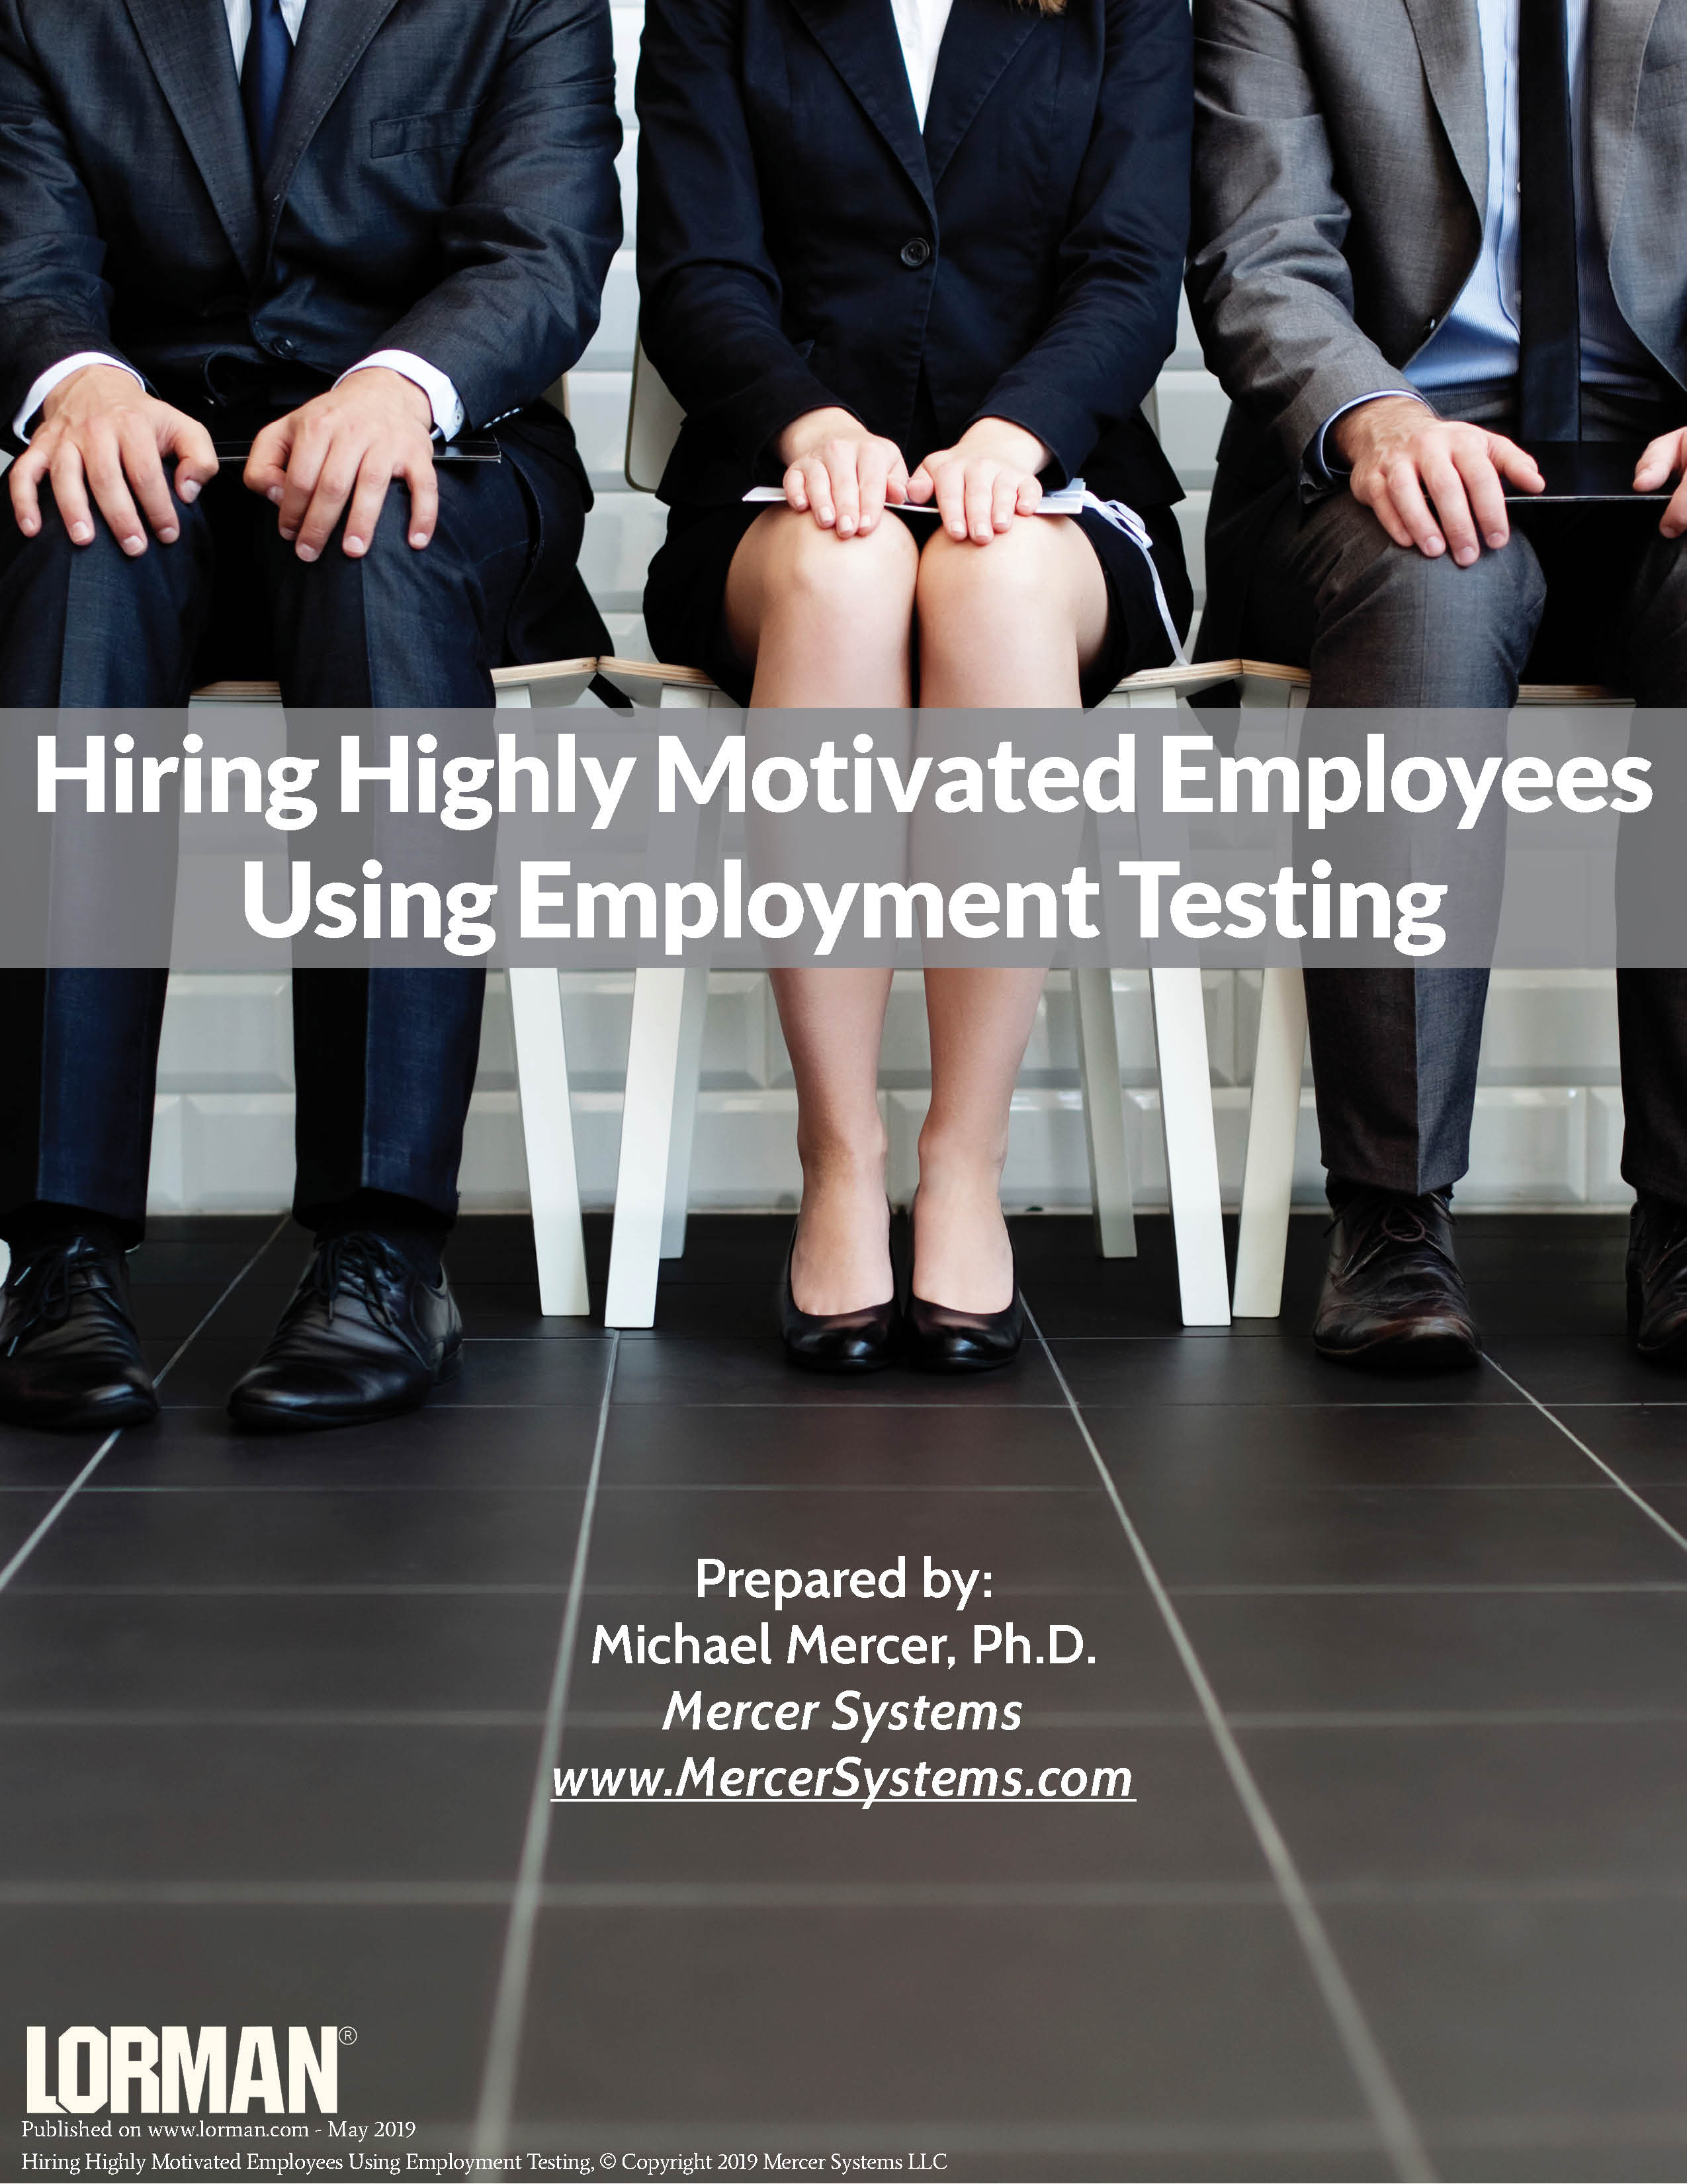 Hiring Highly Motivated Employees Using Employment Testing